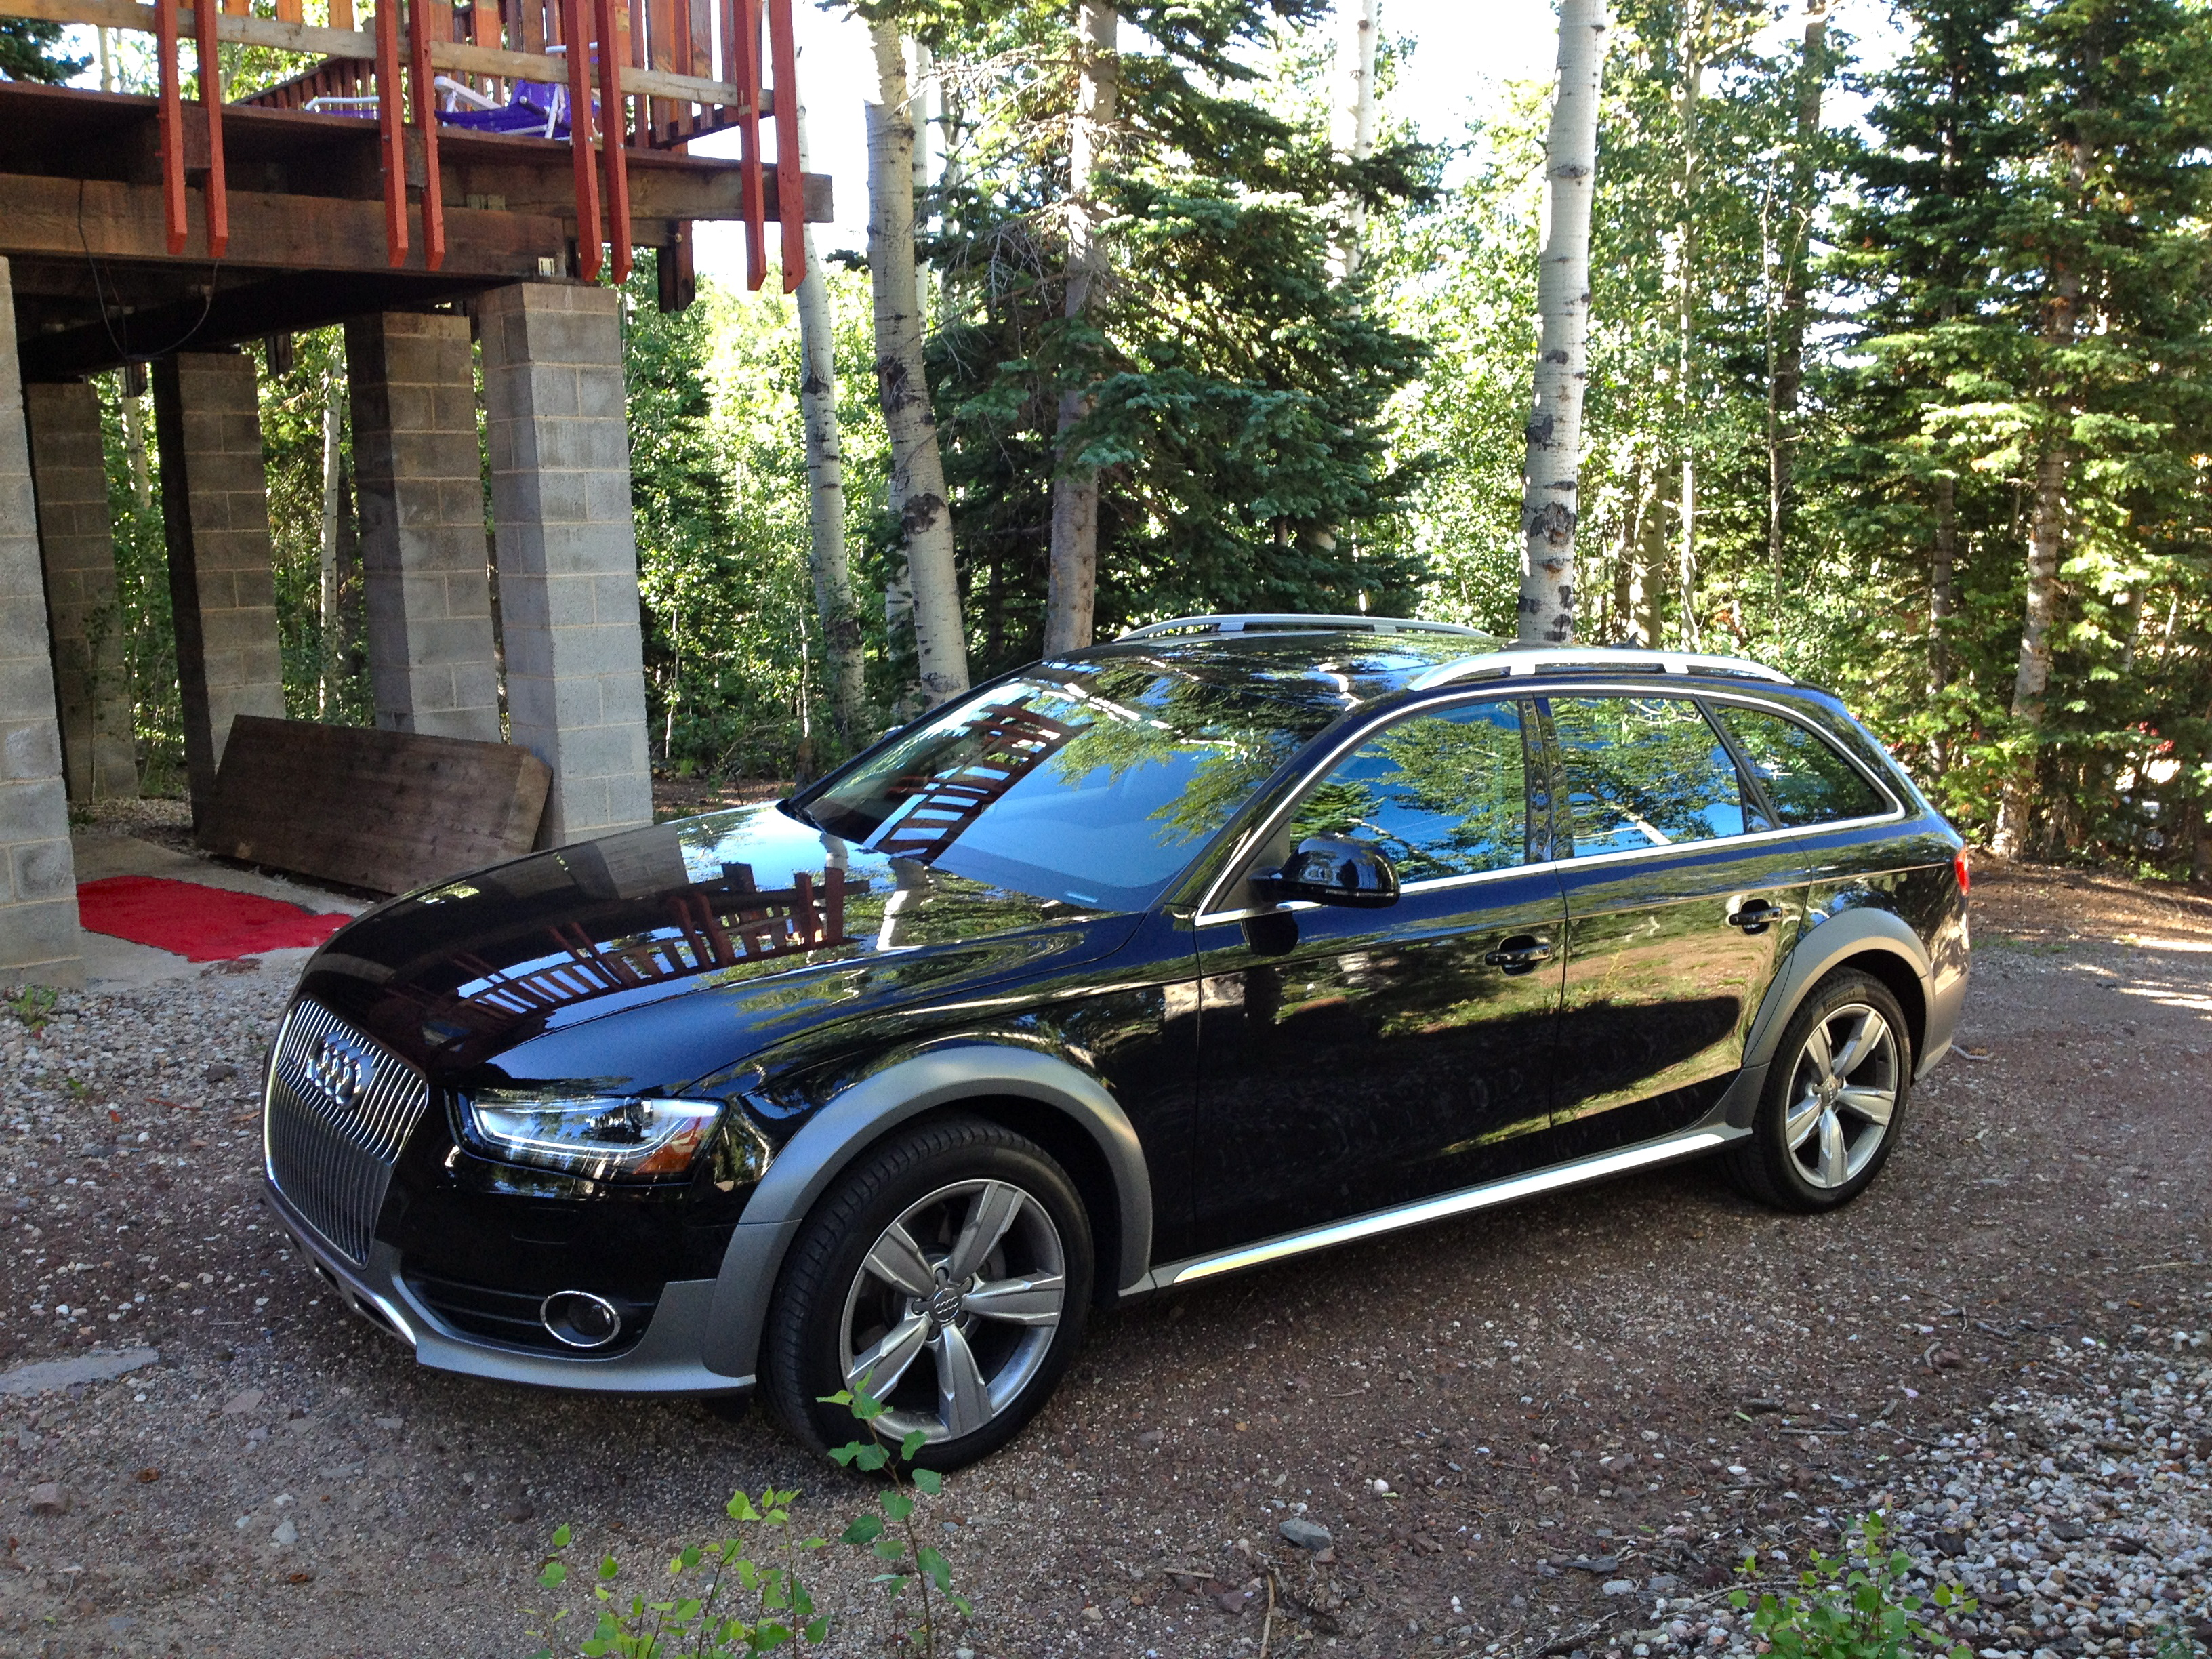 sale for calgary audi allroad ab royal cars royaloakaudi oak